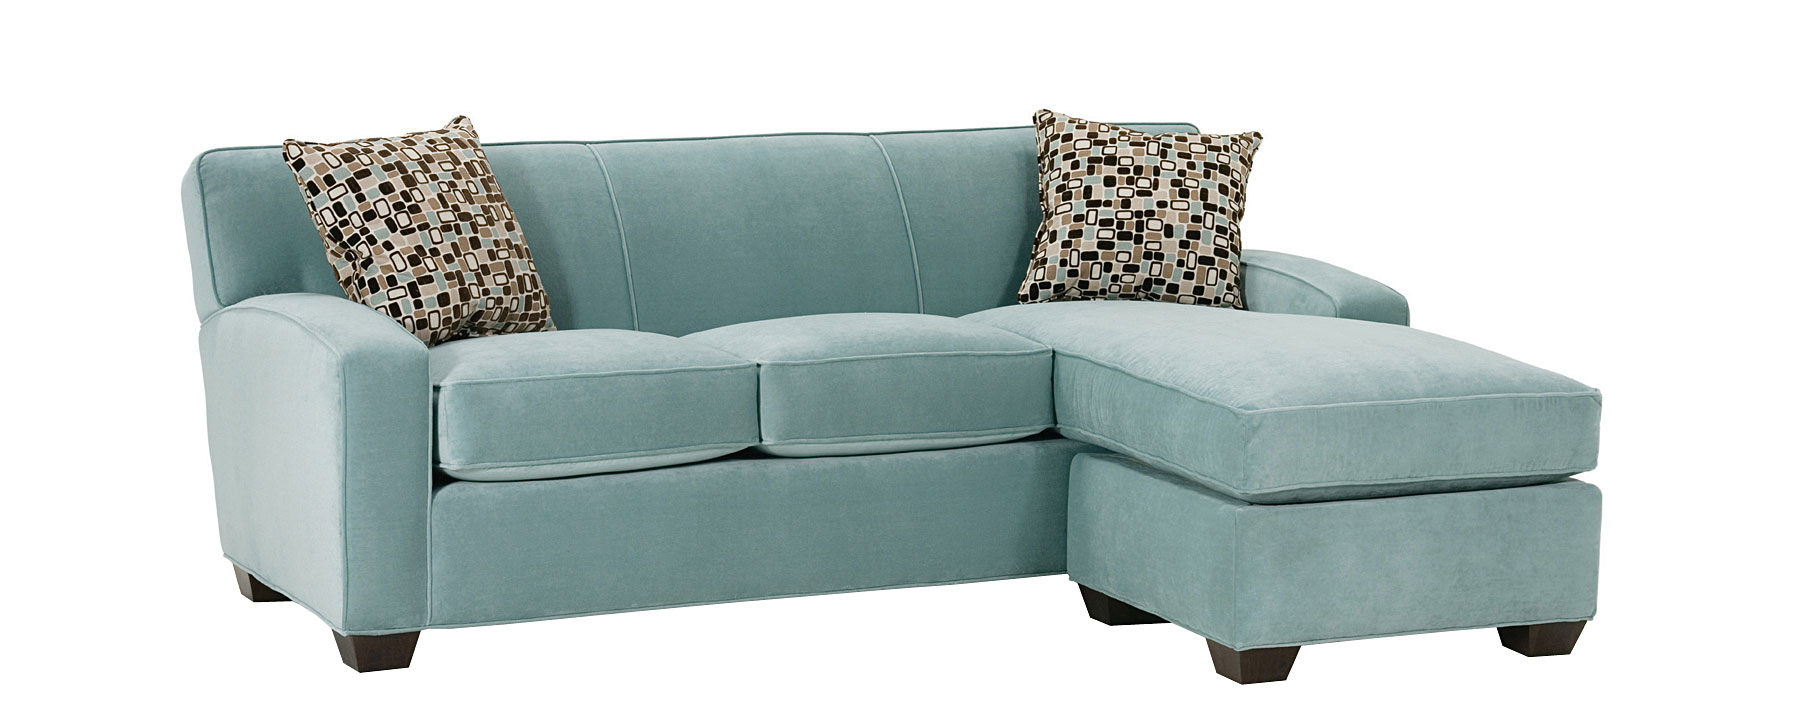 Small contemporary sectional sofa couch with chaise club for Apartment sofa chaise